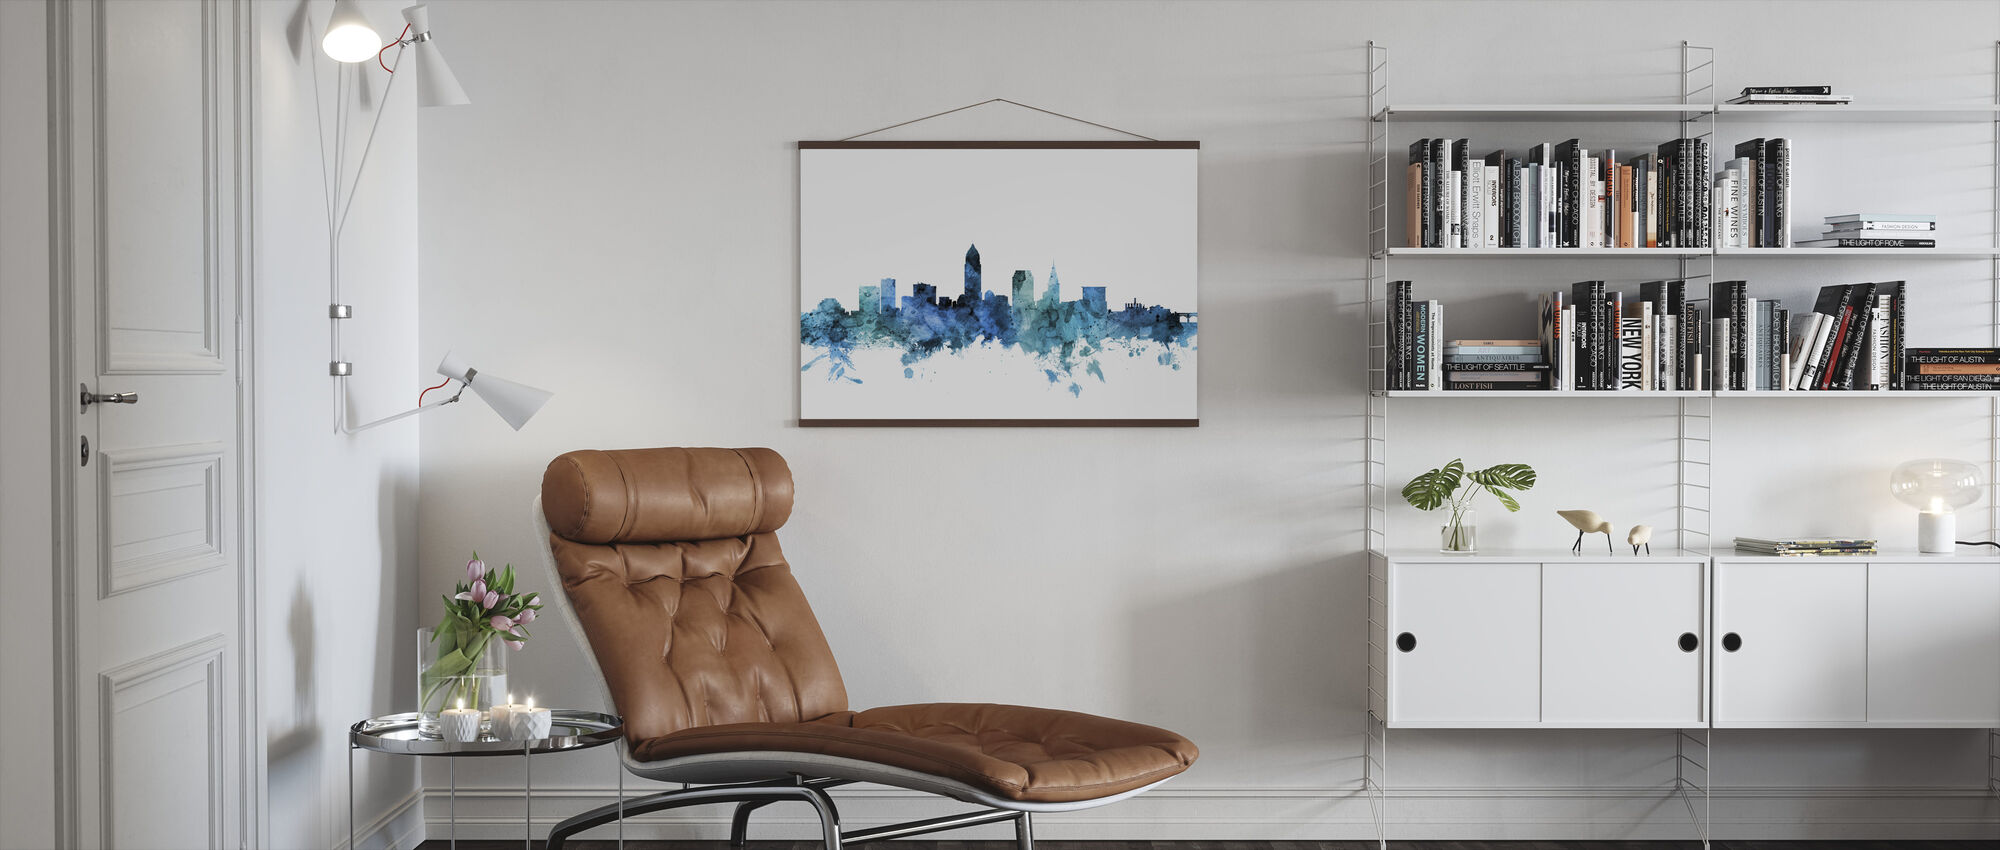 Cleveland Ohio Skyline - Poster - Living Room